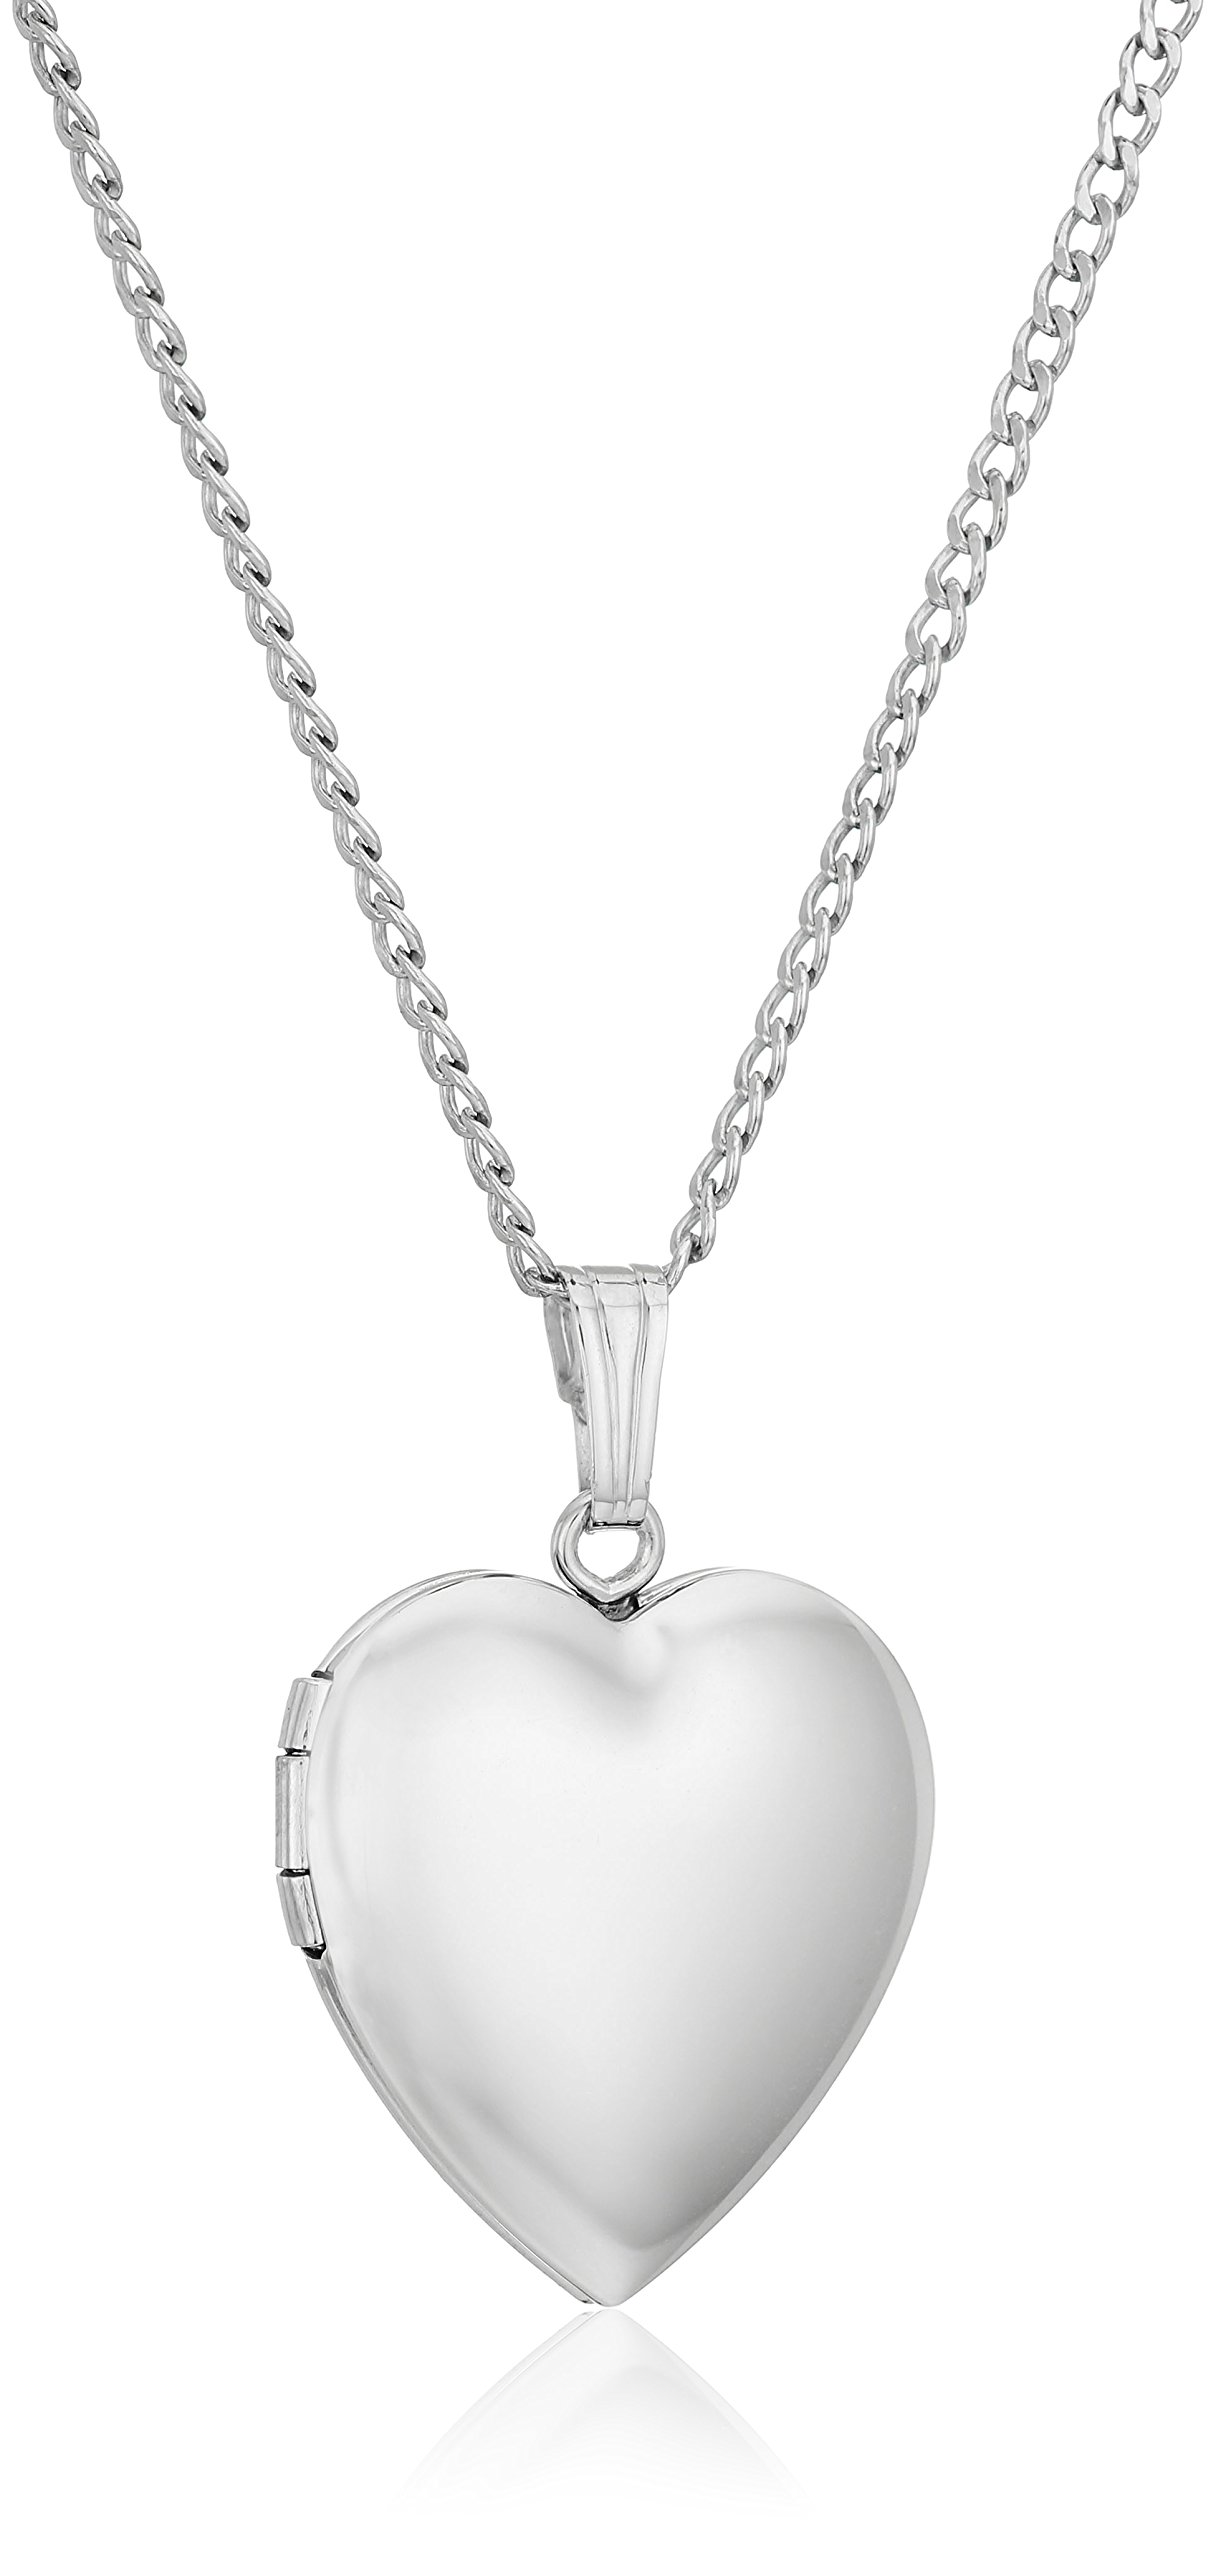 Sterling Silver Polished Heart Locket Necklace, 16'' by Amazon Collection